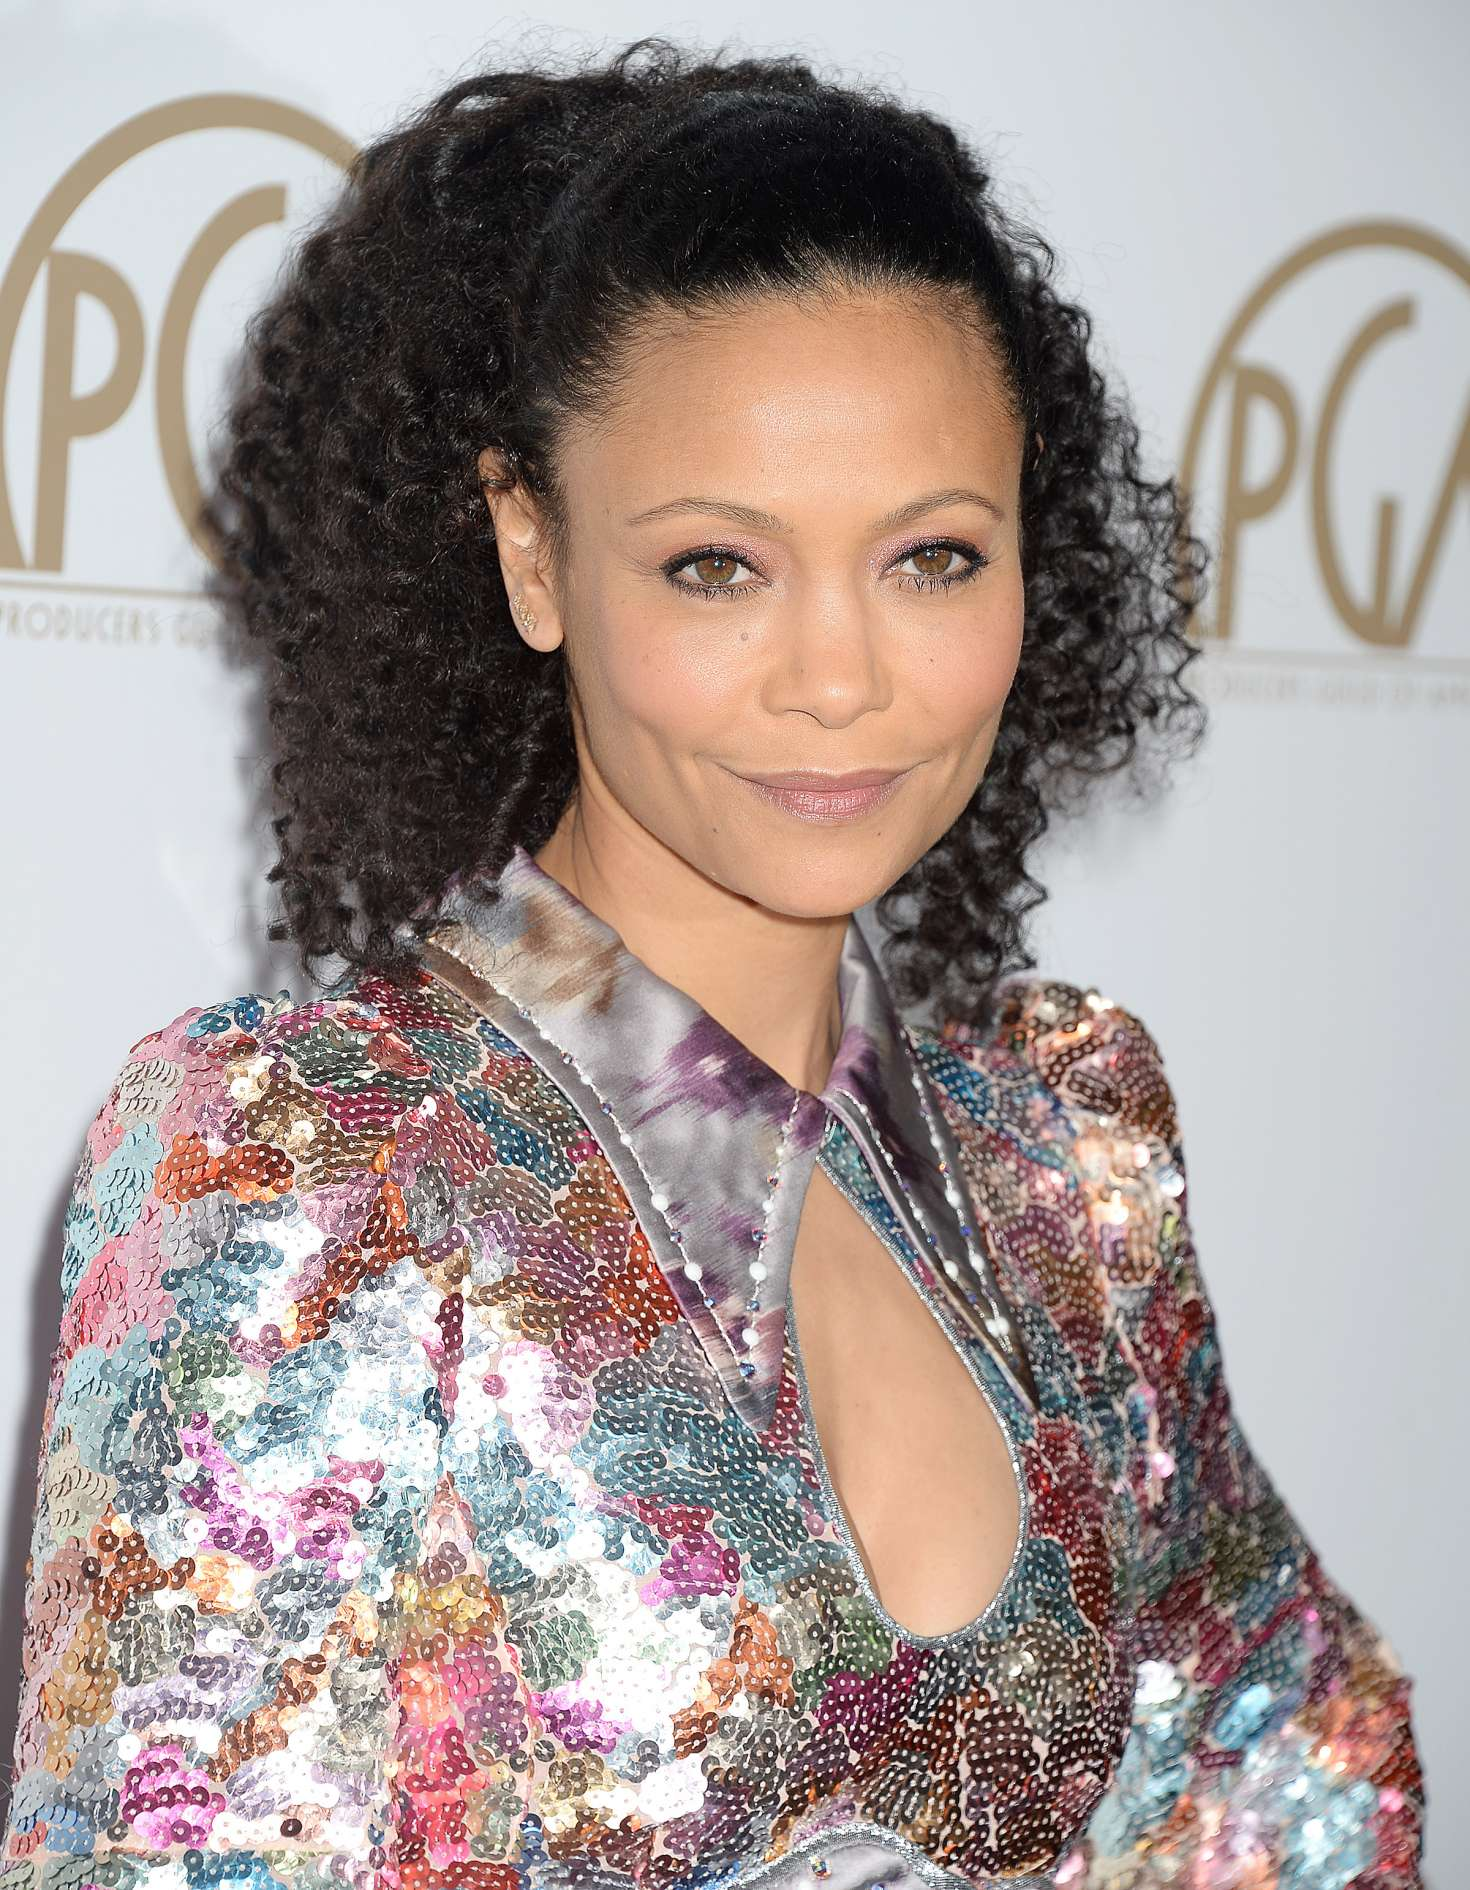 Thandie Newton - 2017 Annual Producers Guild Awards in Los Angeles